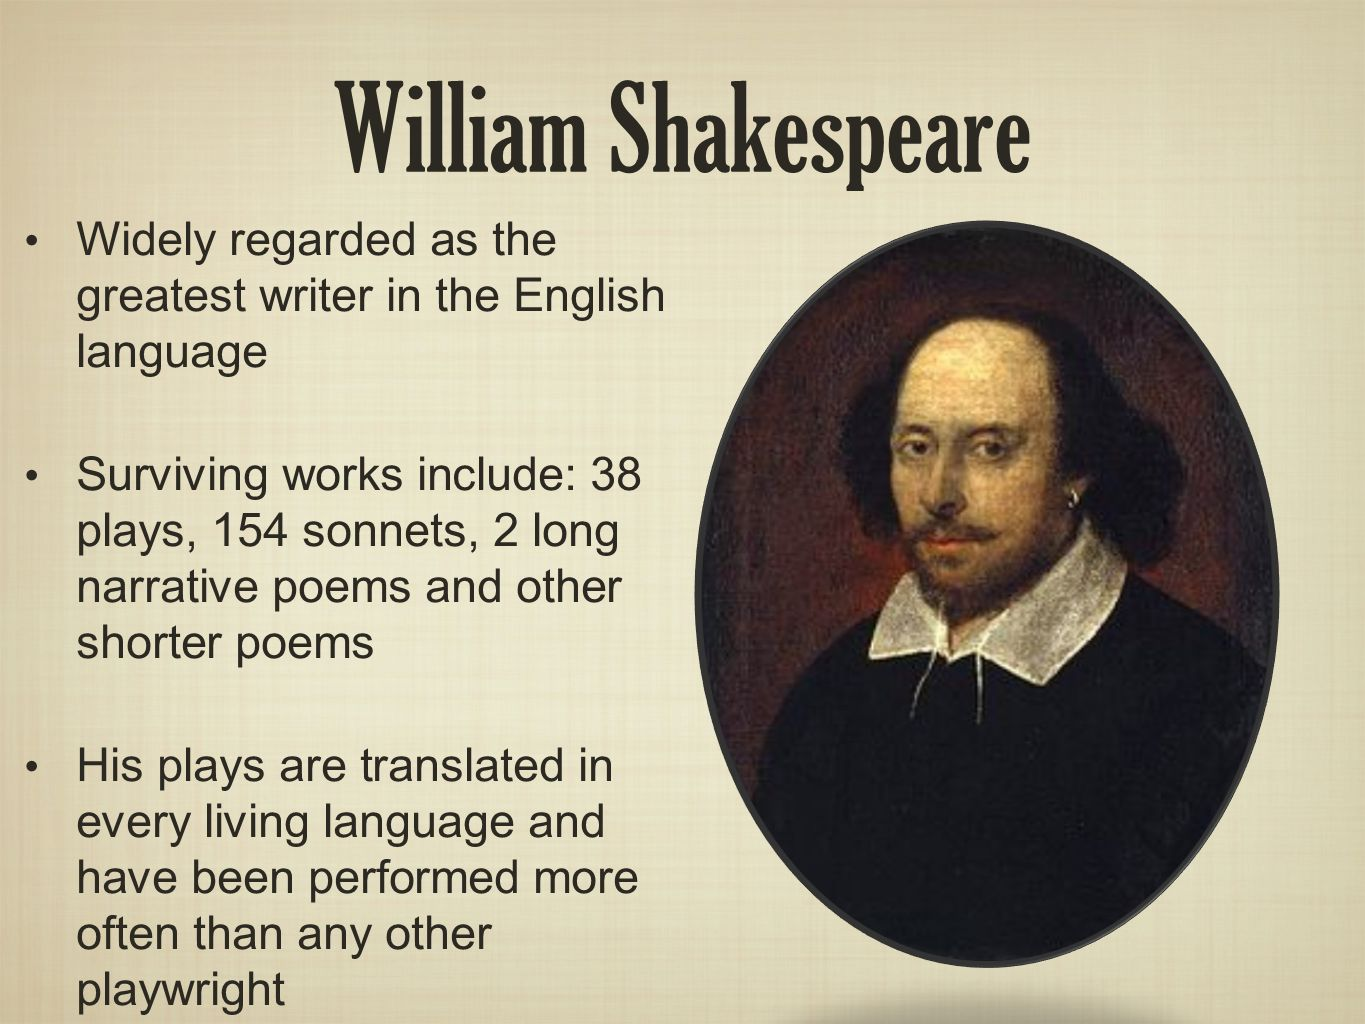 a description of william shakespeare as the greatest playwright of the english language William shakespeare is widely regarded as the greatest writer in the english language and the world's pre-eminent dramatist his plays remain highly popular today and are constantly studied, performed and reinterpreted in diverse cultural and political contexts throughout the world.